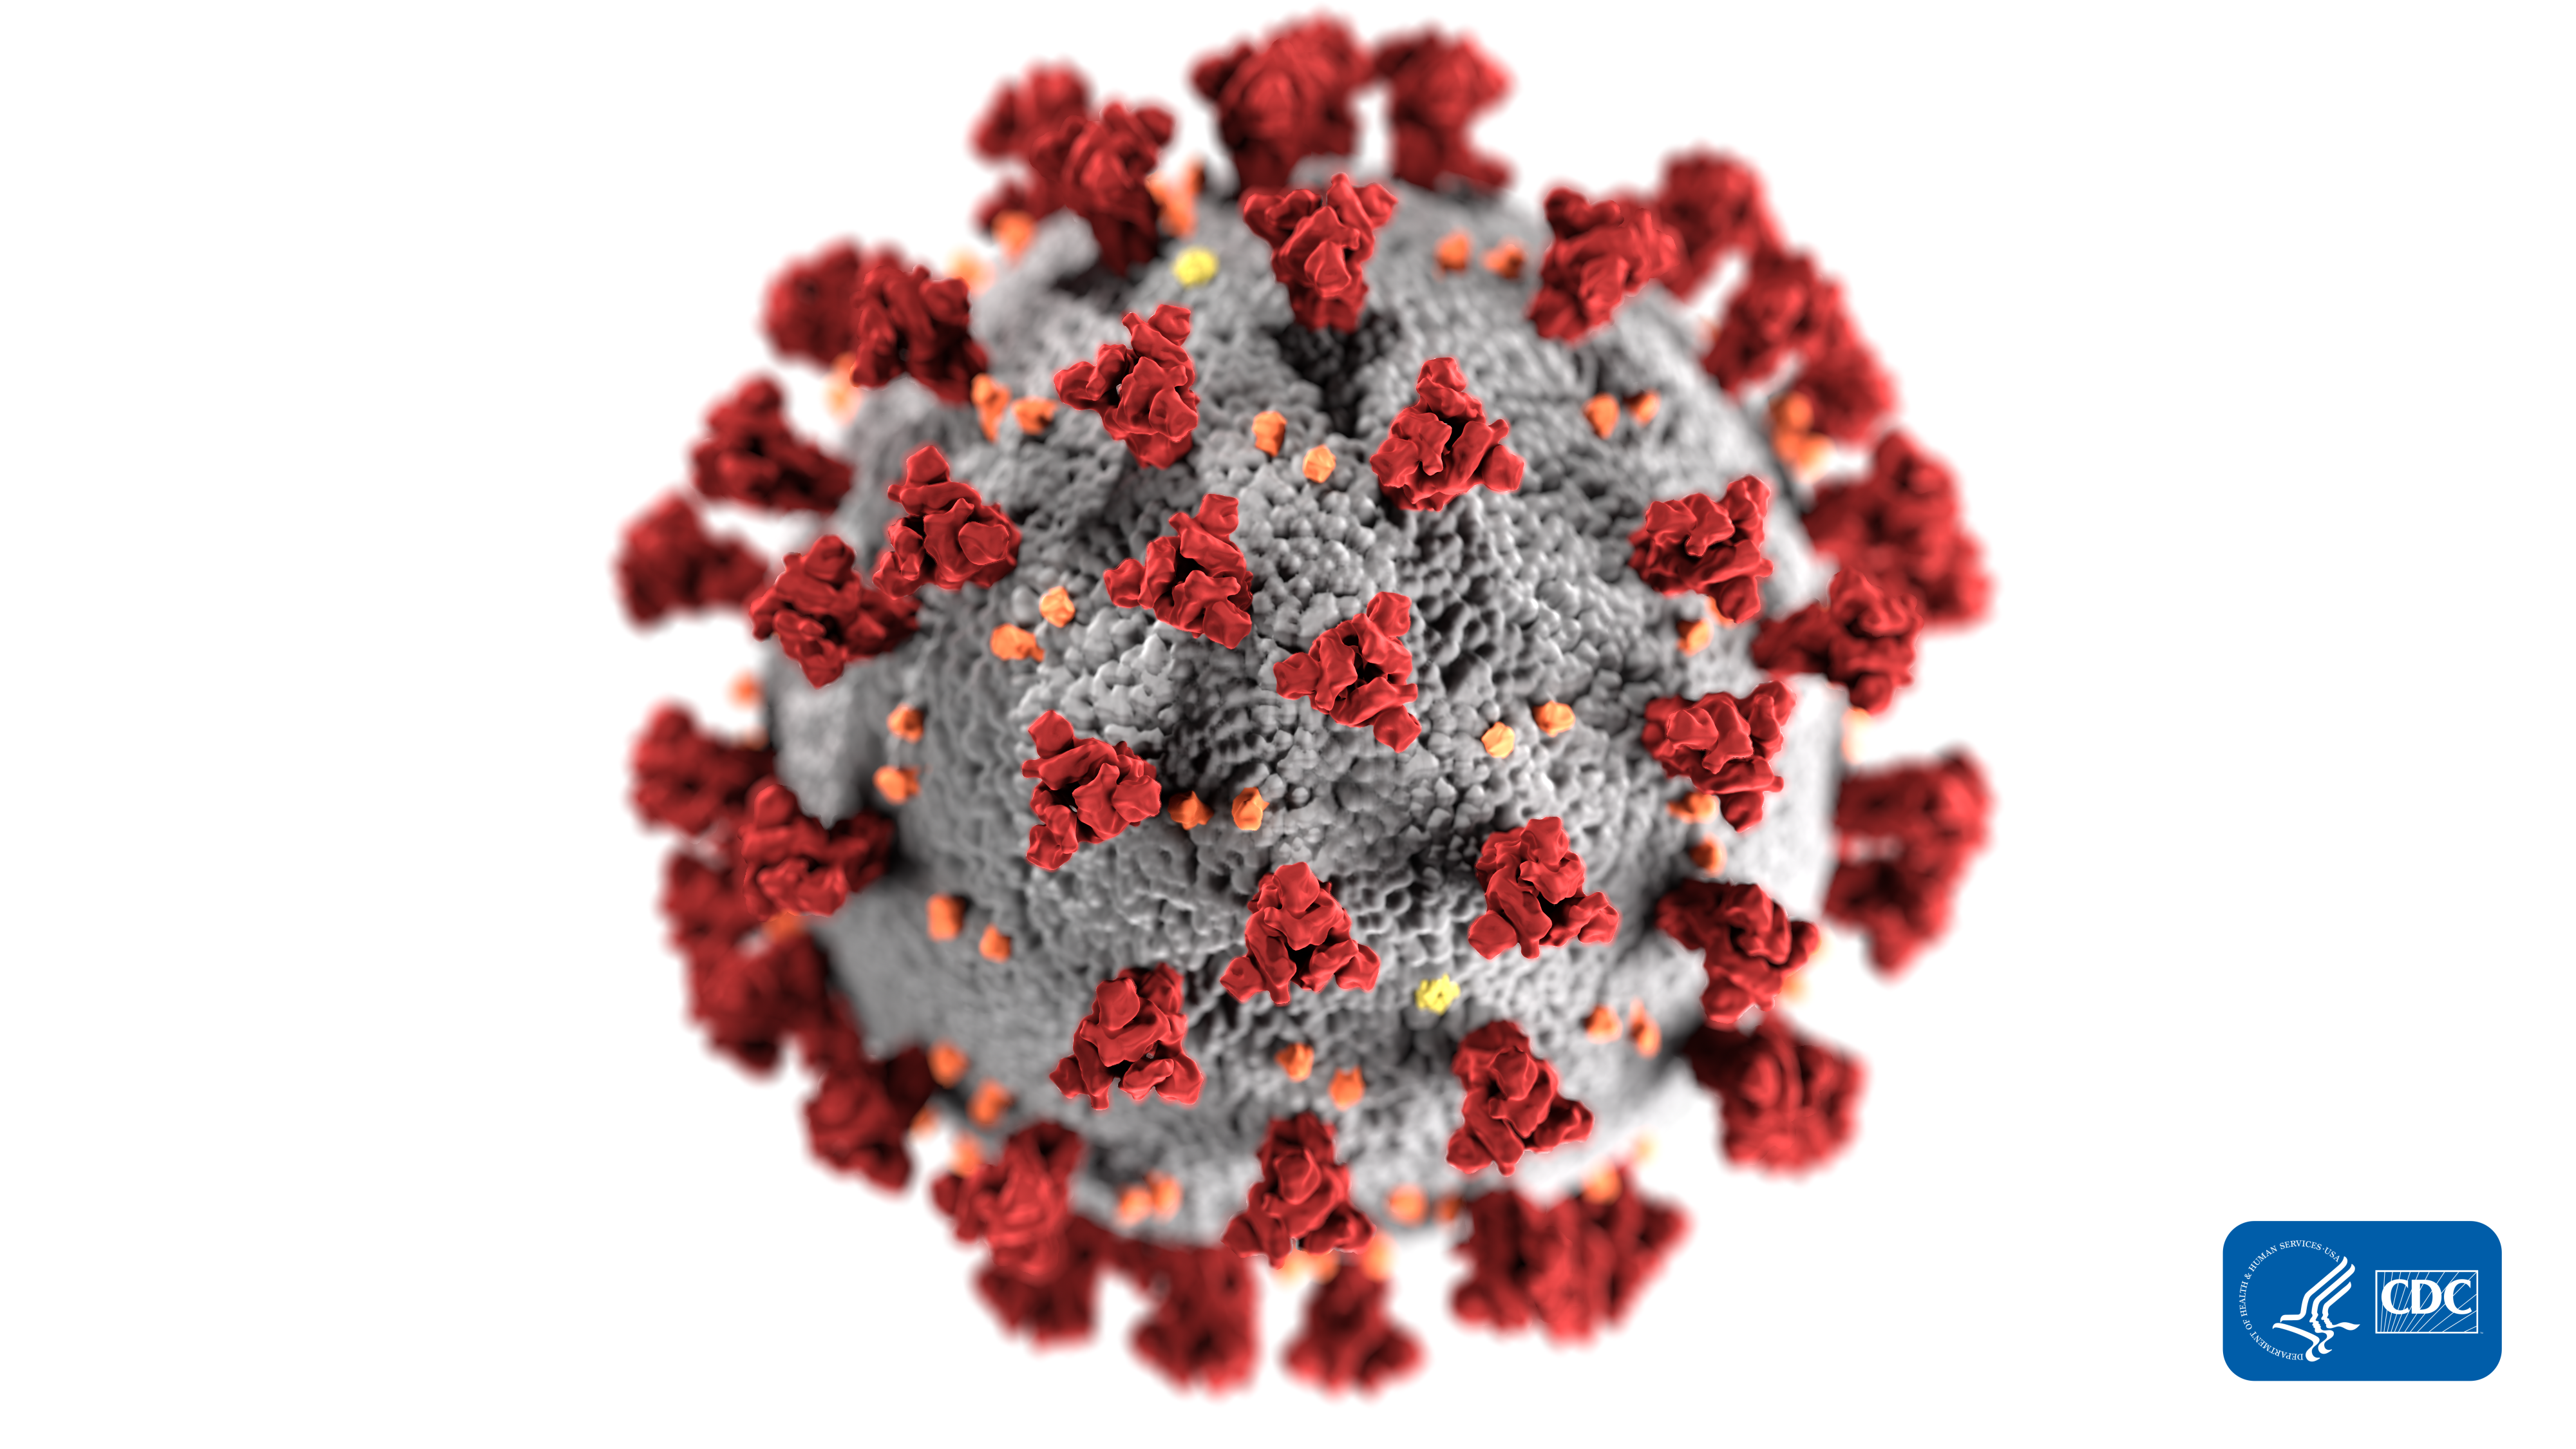 High resolution microscopic image of a coronavirus particle